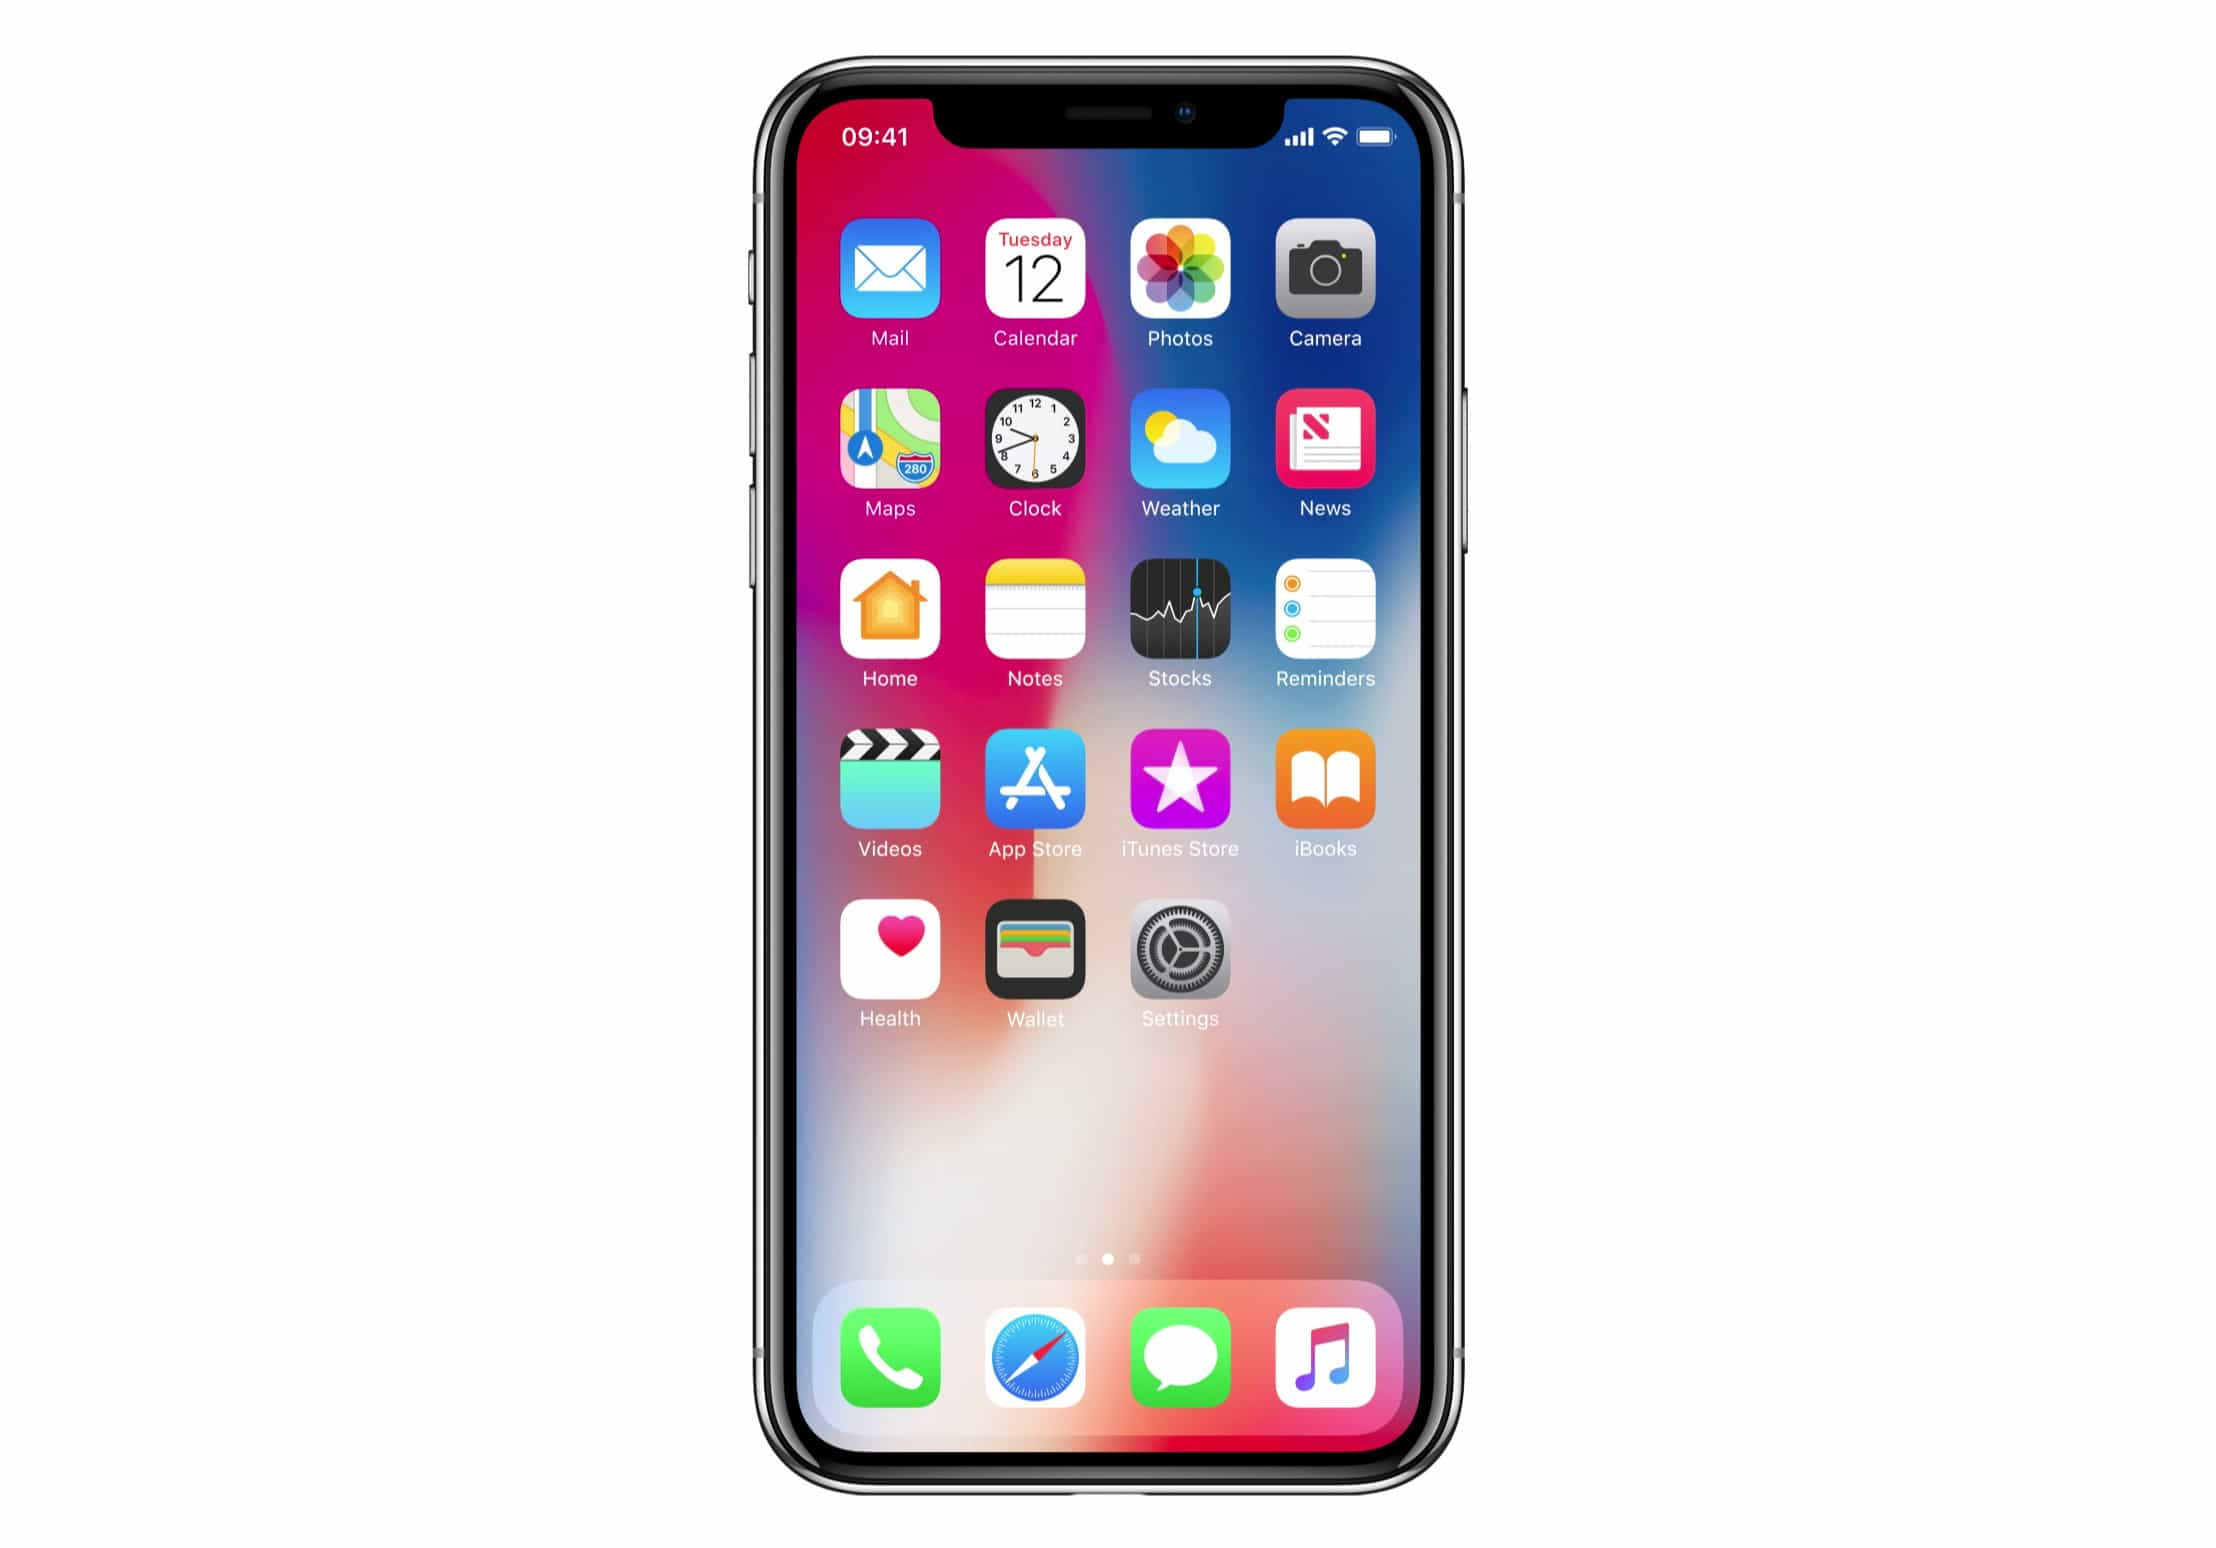 Apple will reportedly make just 20 million iPhone X units